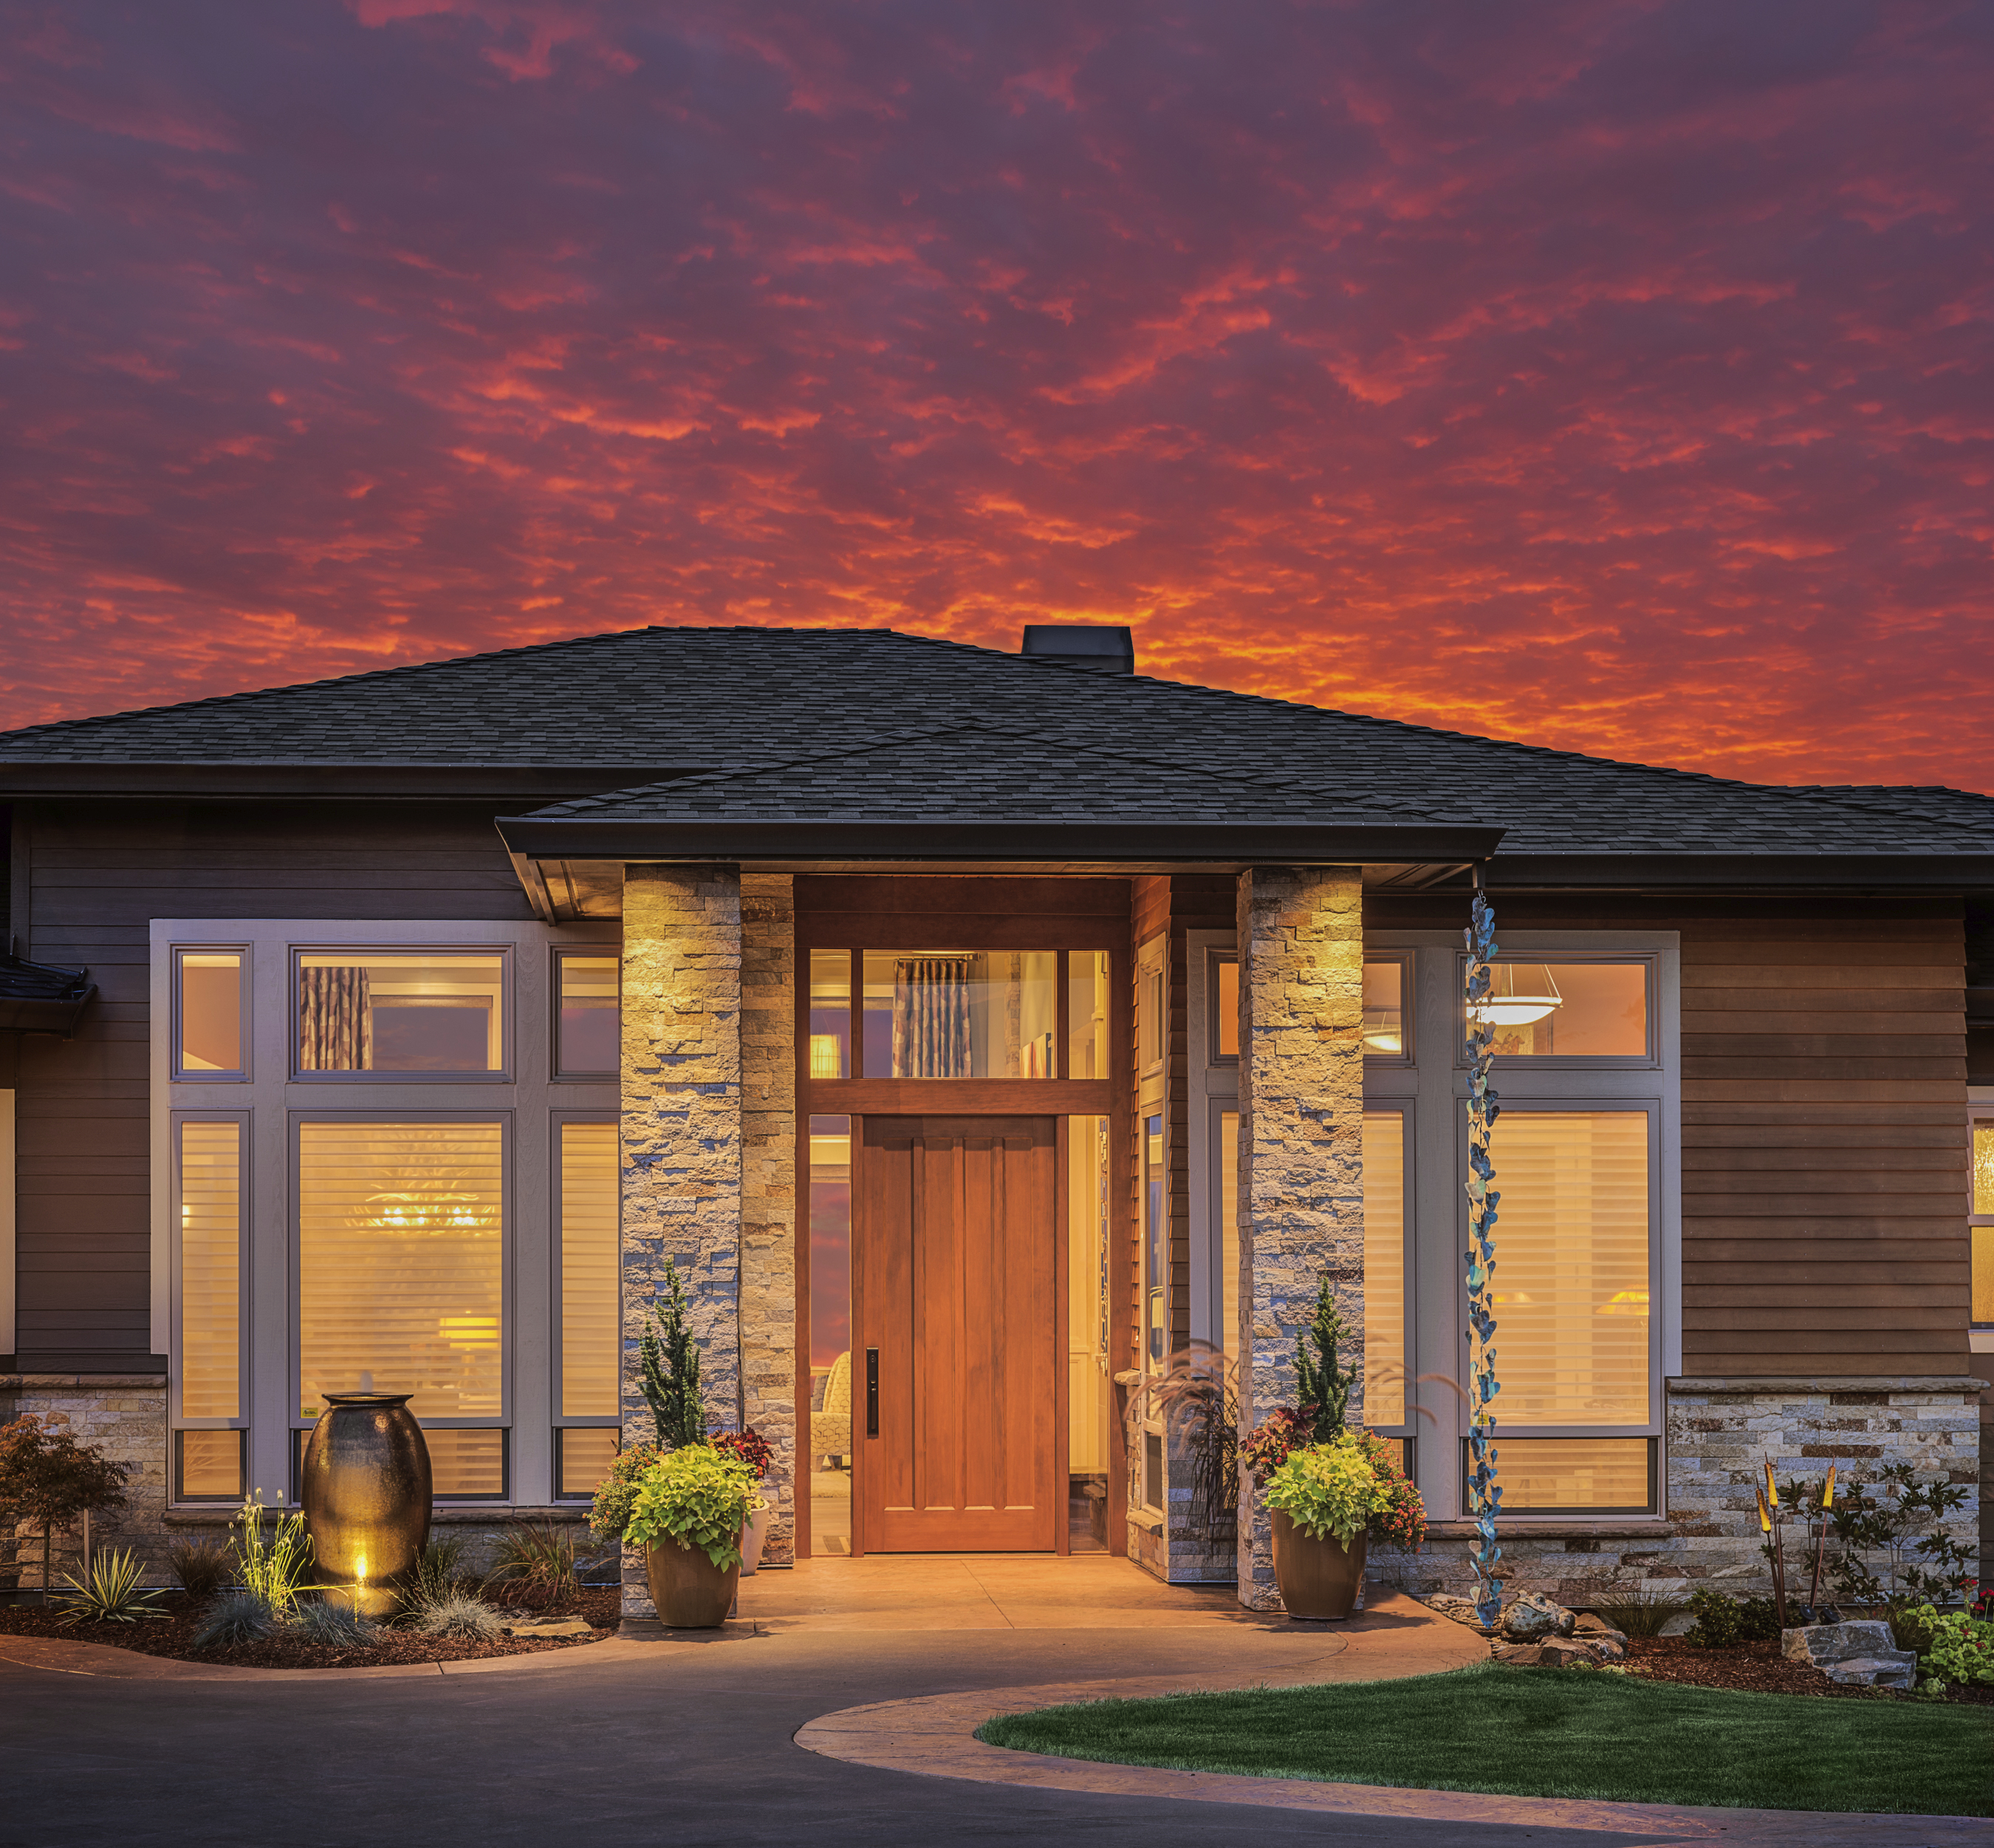 Bellevue wa homes for sale priced 1500000 to 2000000 realty times bellevue wa homes for sale priced 150000 to 2000000 solutioingenieria Images